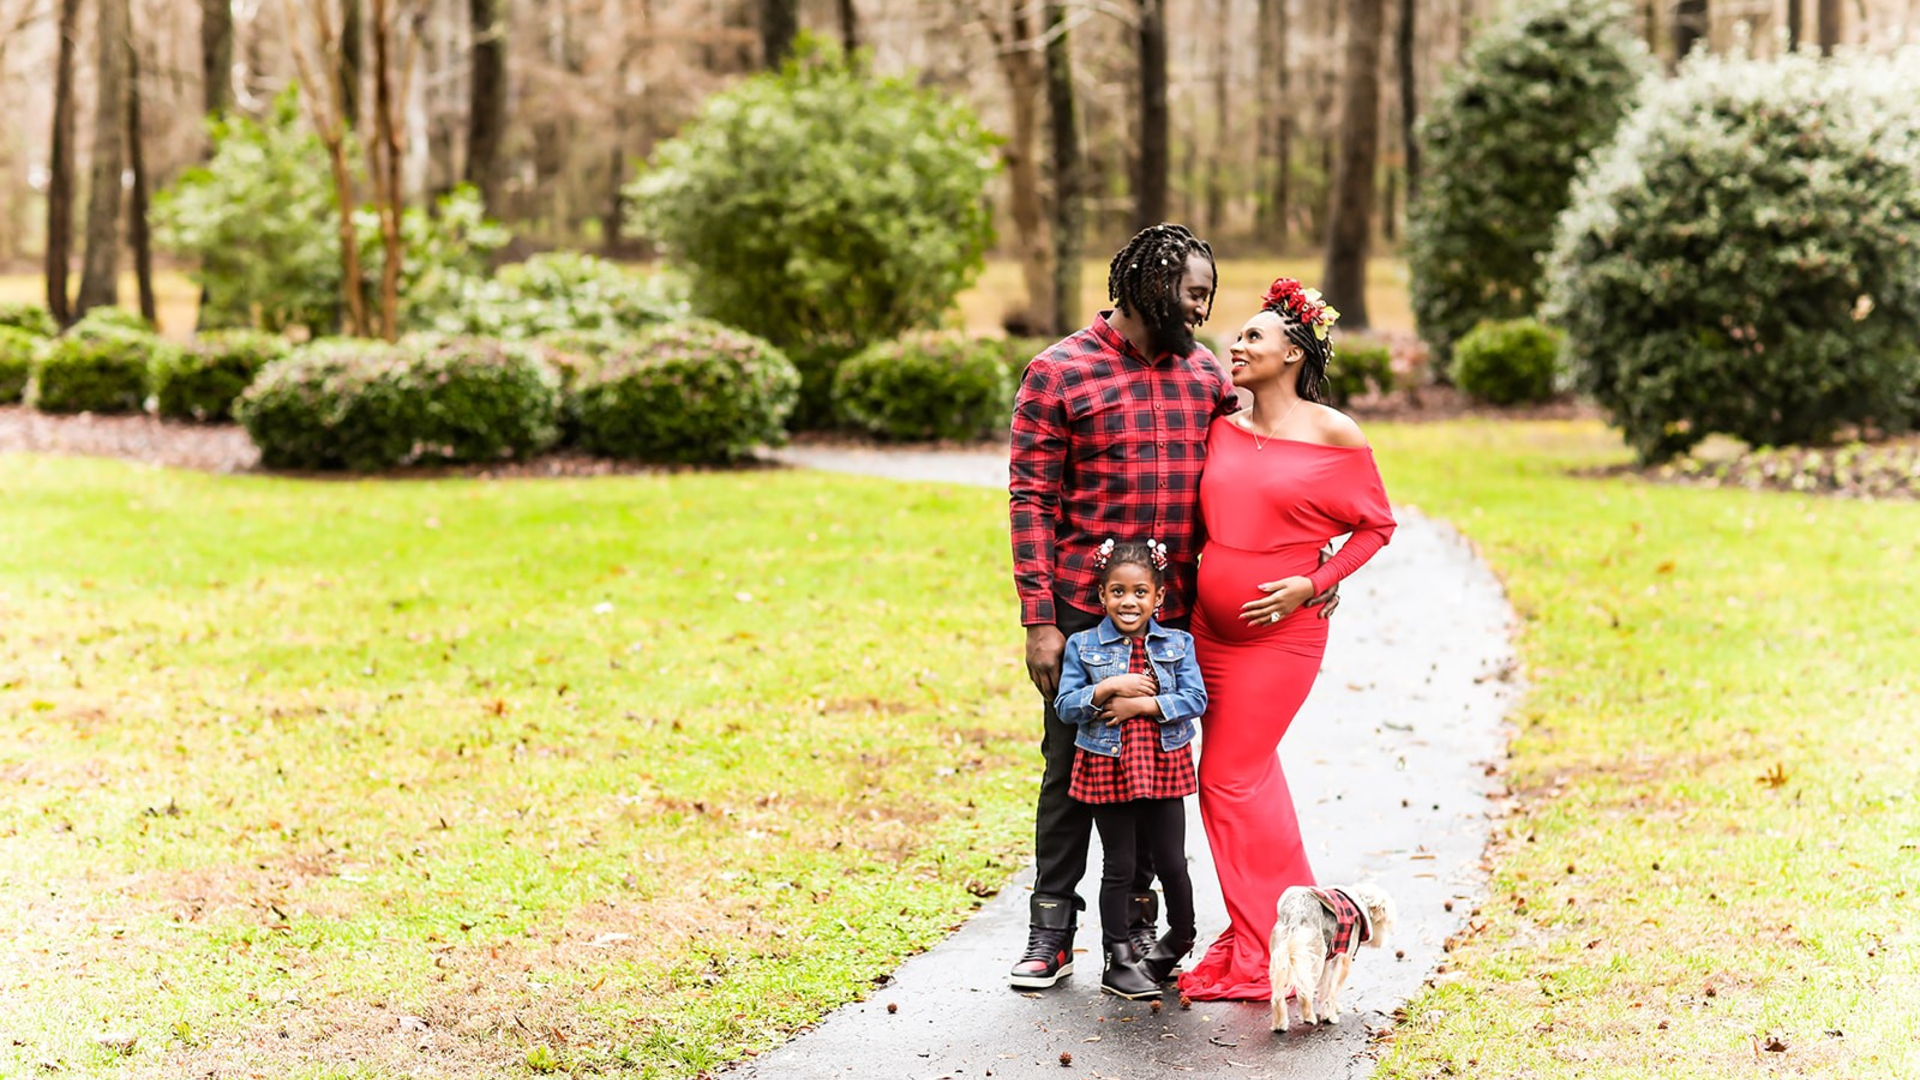 Kiki Searcy is an athlete who's also married to a professional football player, so she's no stranger to hard work and physical challenges. But when Kiki was pregnant with her son, she faced a tremendous number of obstacles. Luckily, she came through it like a champ and she and her husband now have two healthy children, Kenna and Dominick.